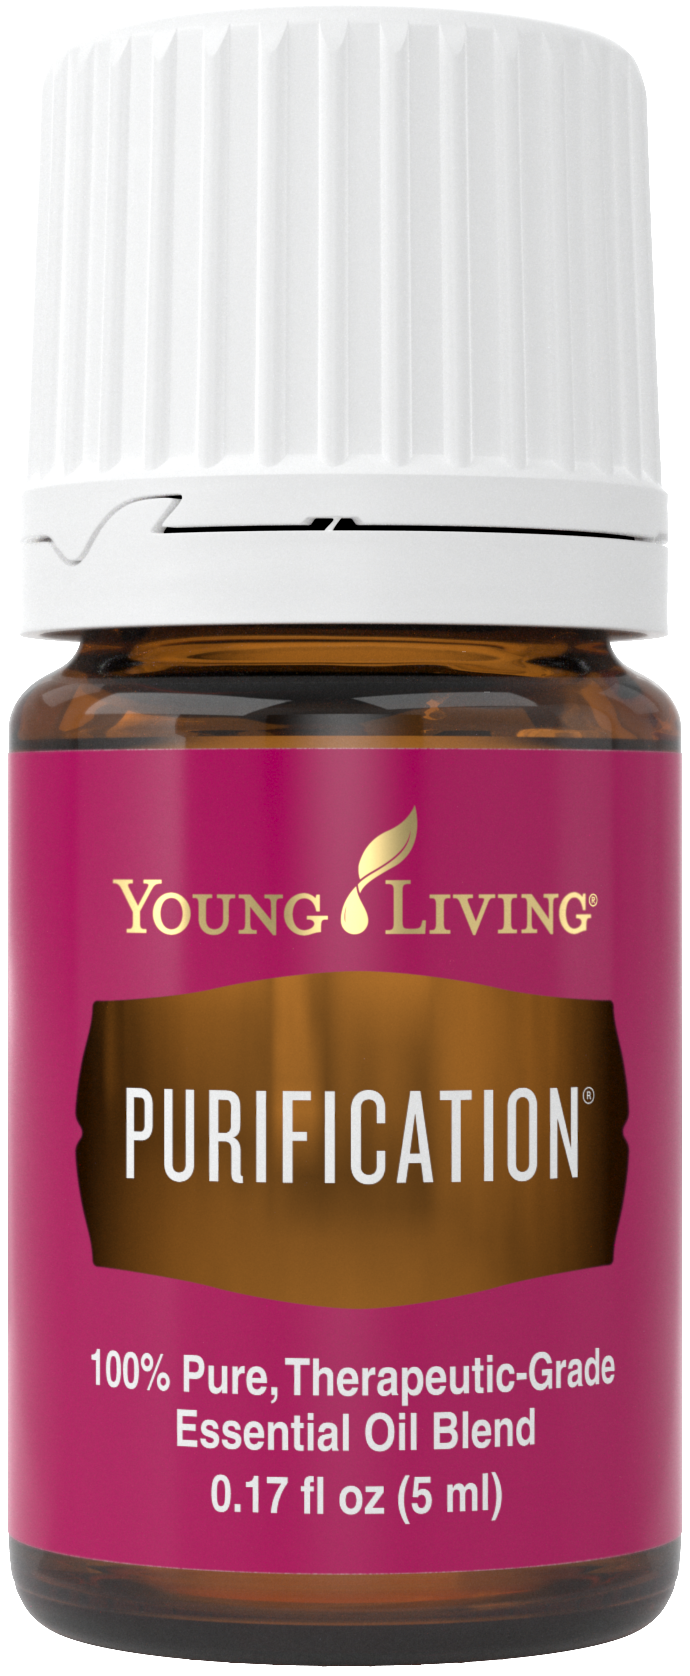 Purification essential oils blend Young Living